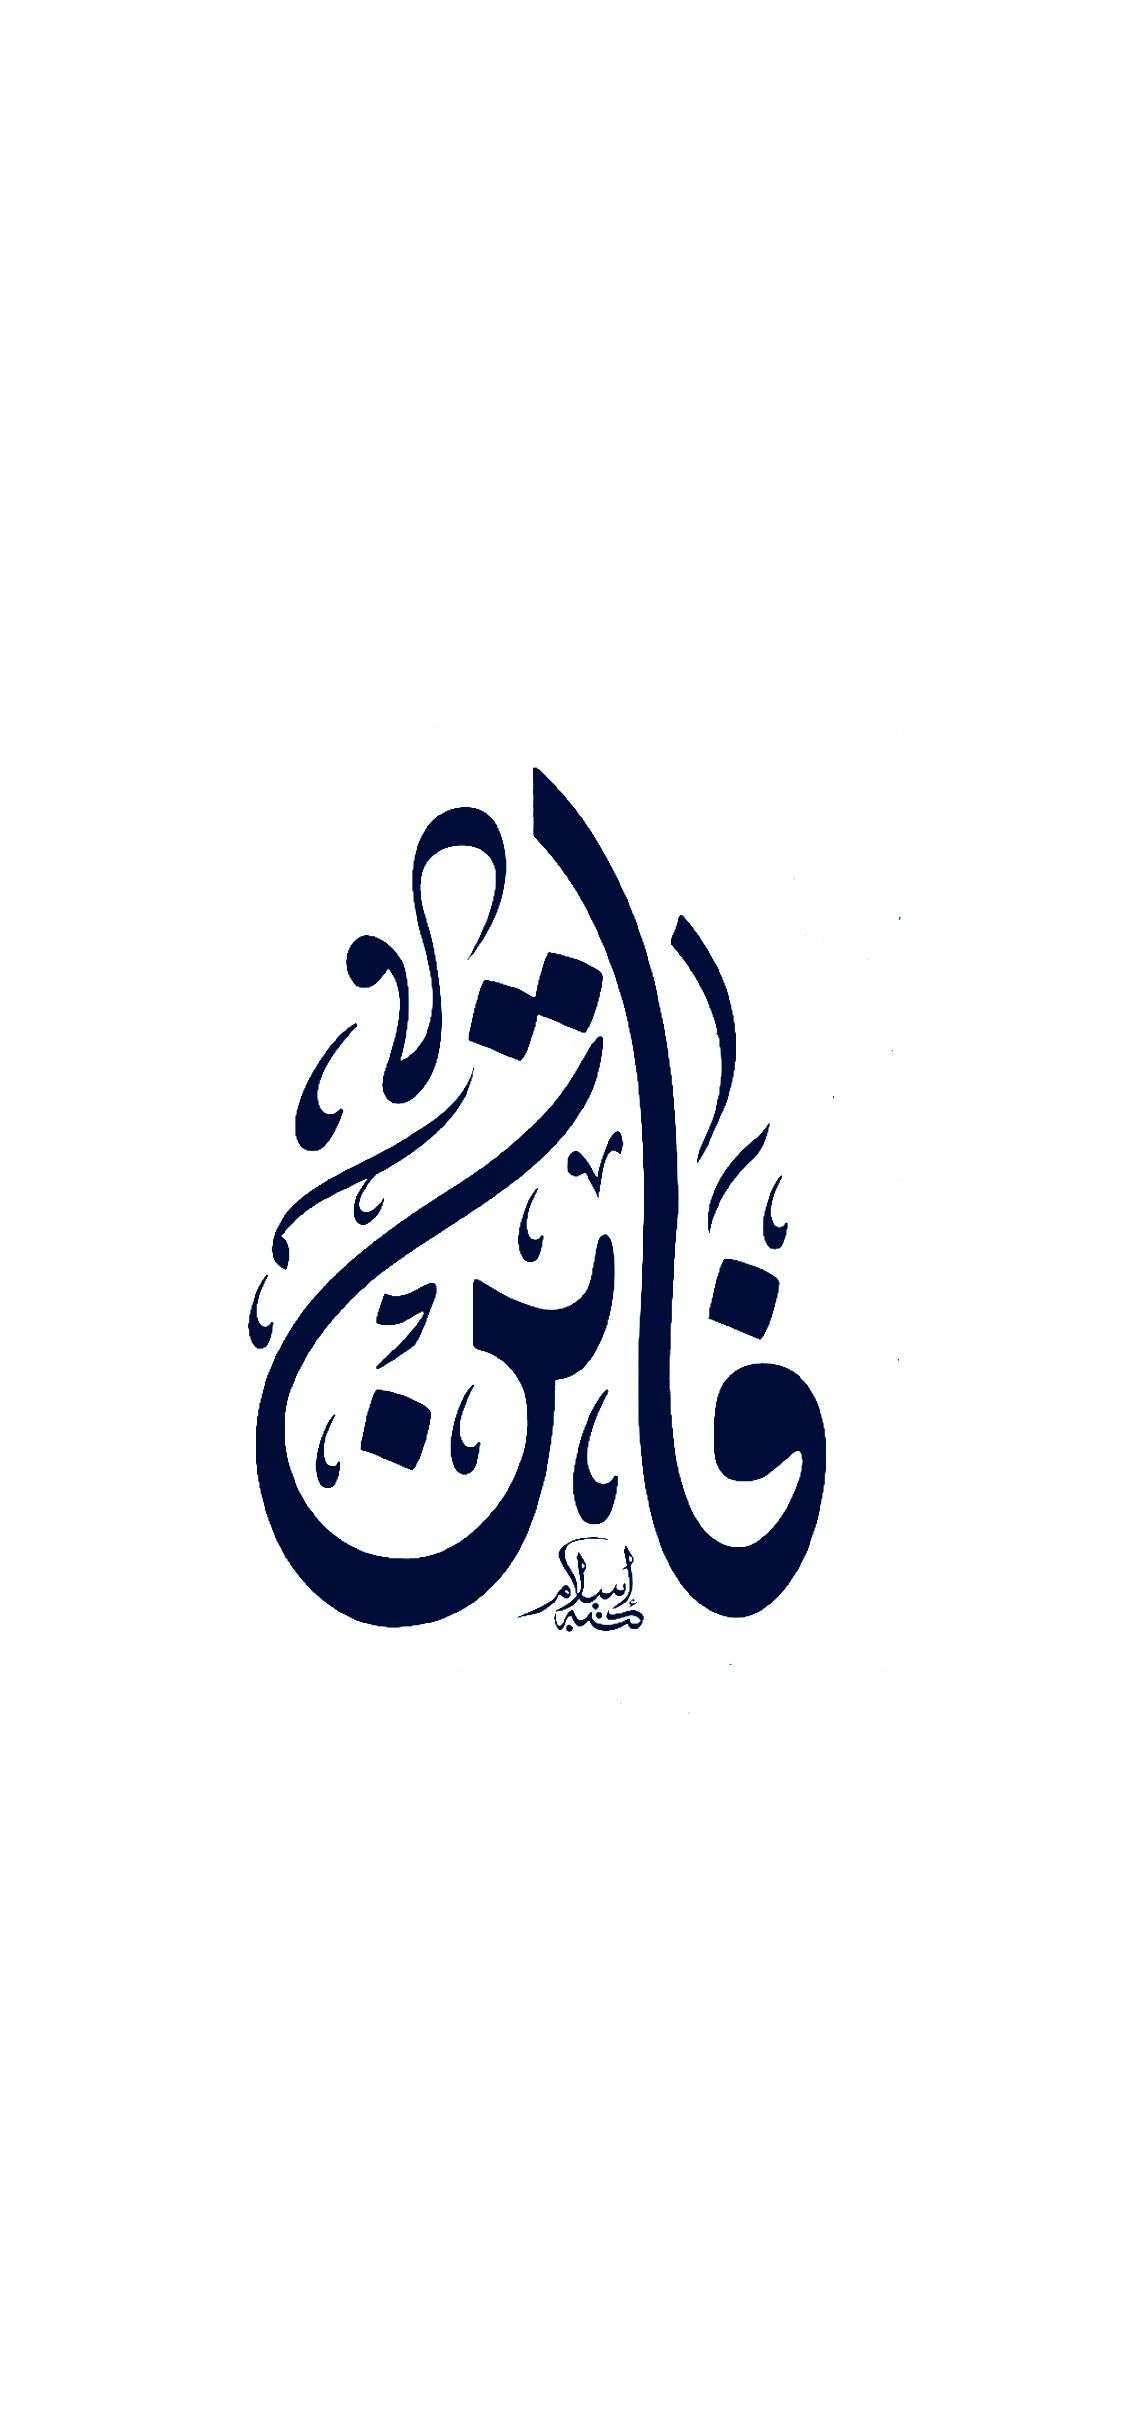 Pin By Smart Selection Advertising On أسماء عربية Arabic Calligraphy Design Calligraphy Name Islamic Calligraphy